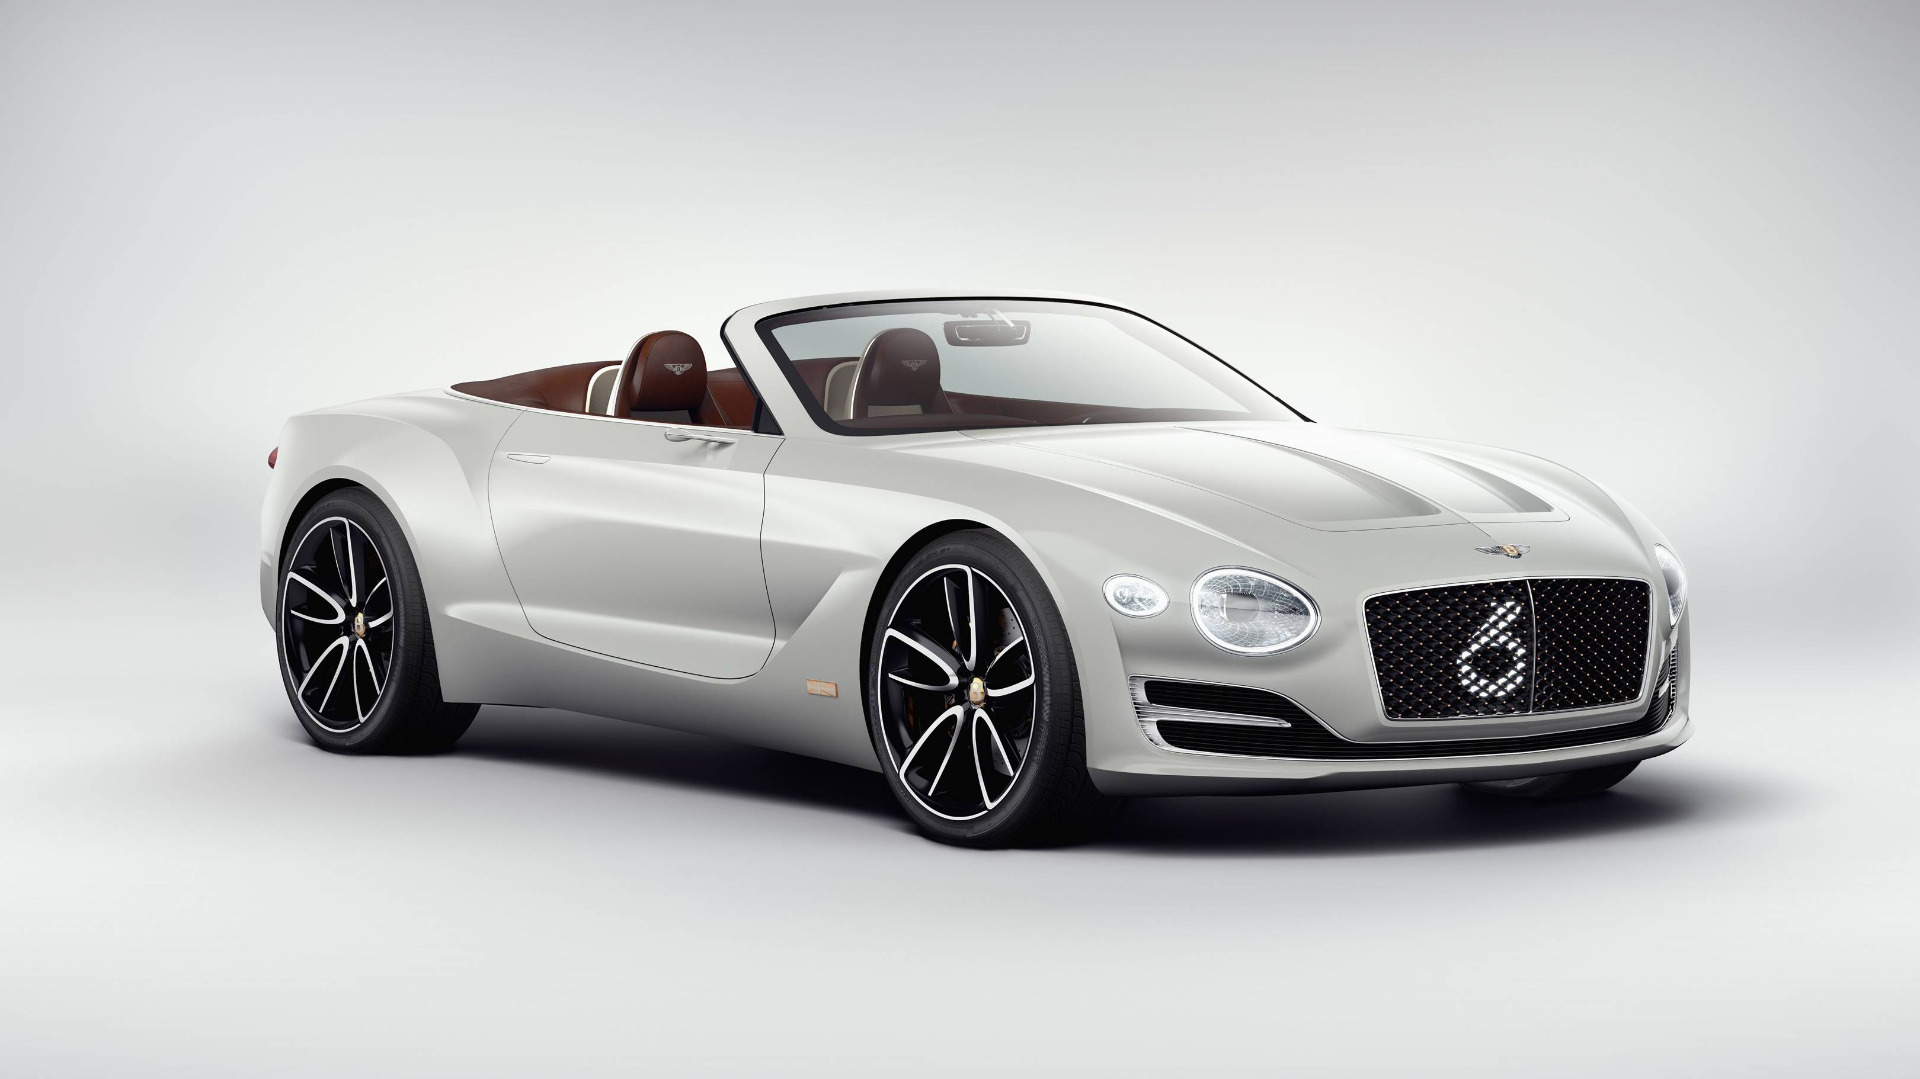 A New Vision For The Future Of Bentley Making Its Debut At 2017 Geneva International Motor Show Exp 12 Sd 6e Concept Represents Bold Statement